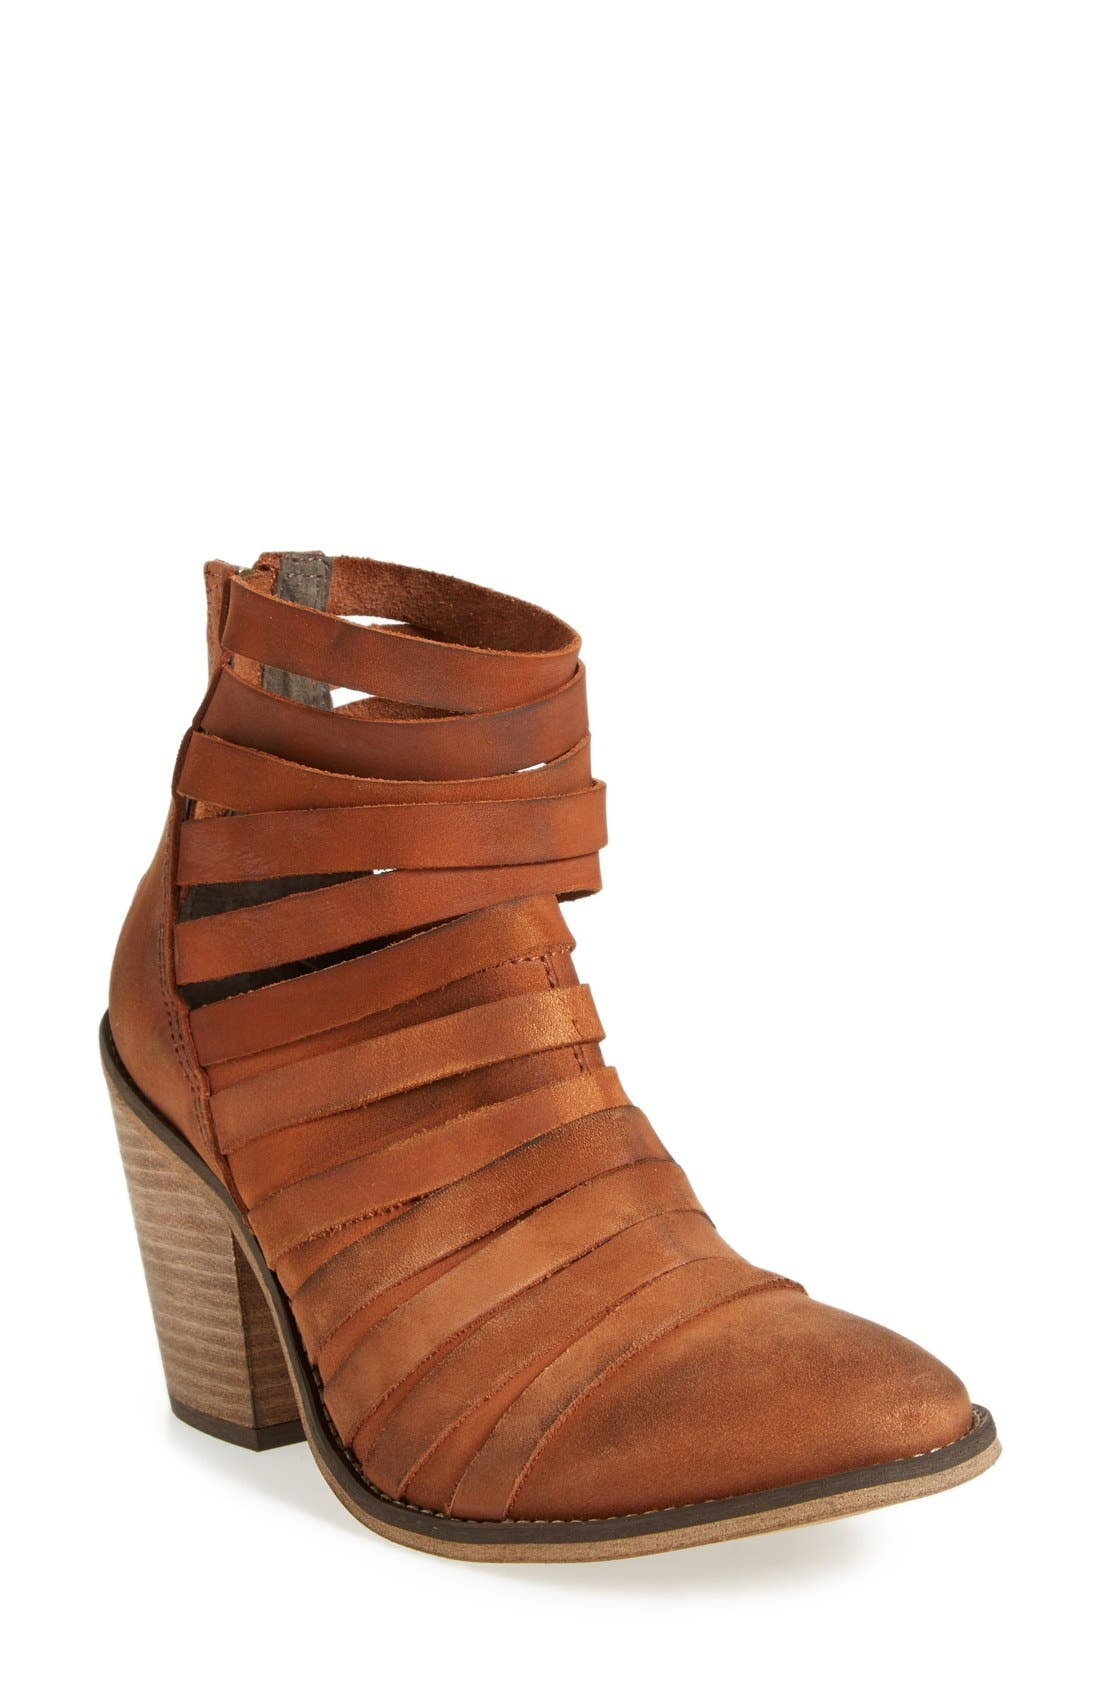 'Hybrid' Strappy Leather Bootie,                         Main,                         color, Terracotta Leather